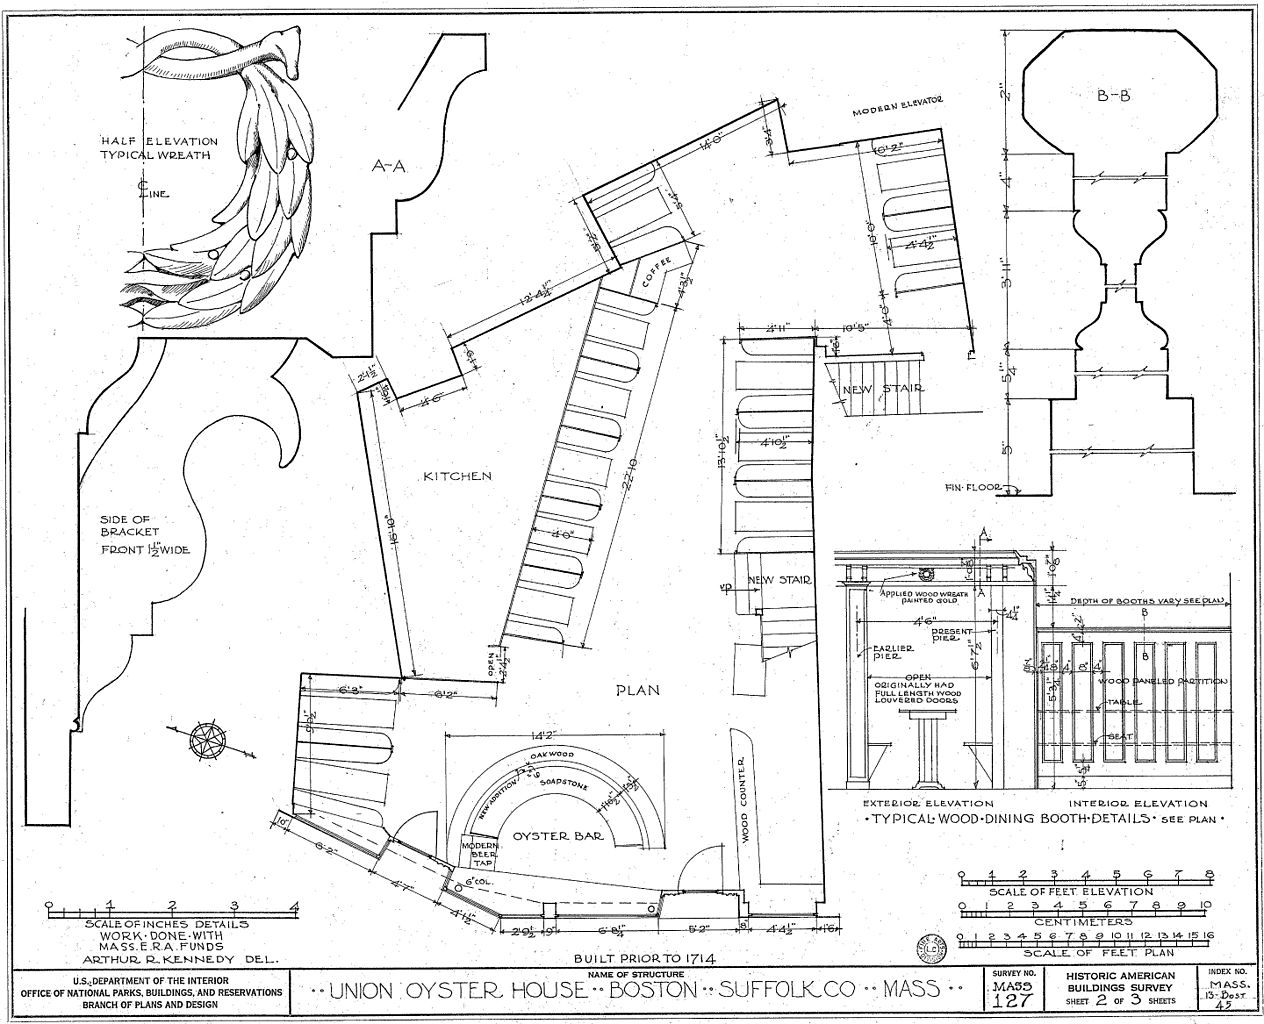 Restaurant layout and design – Inlet Grove News